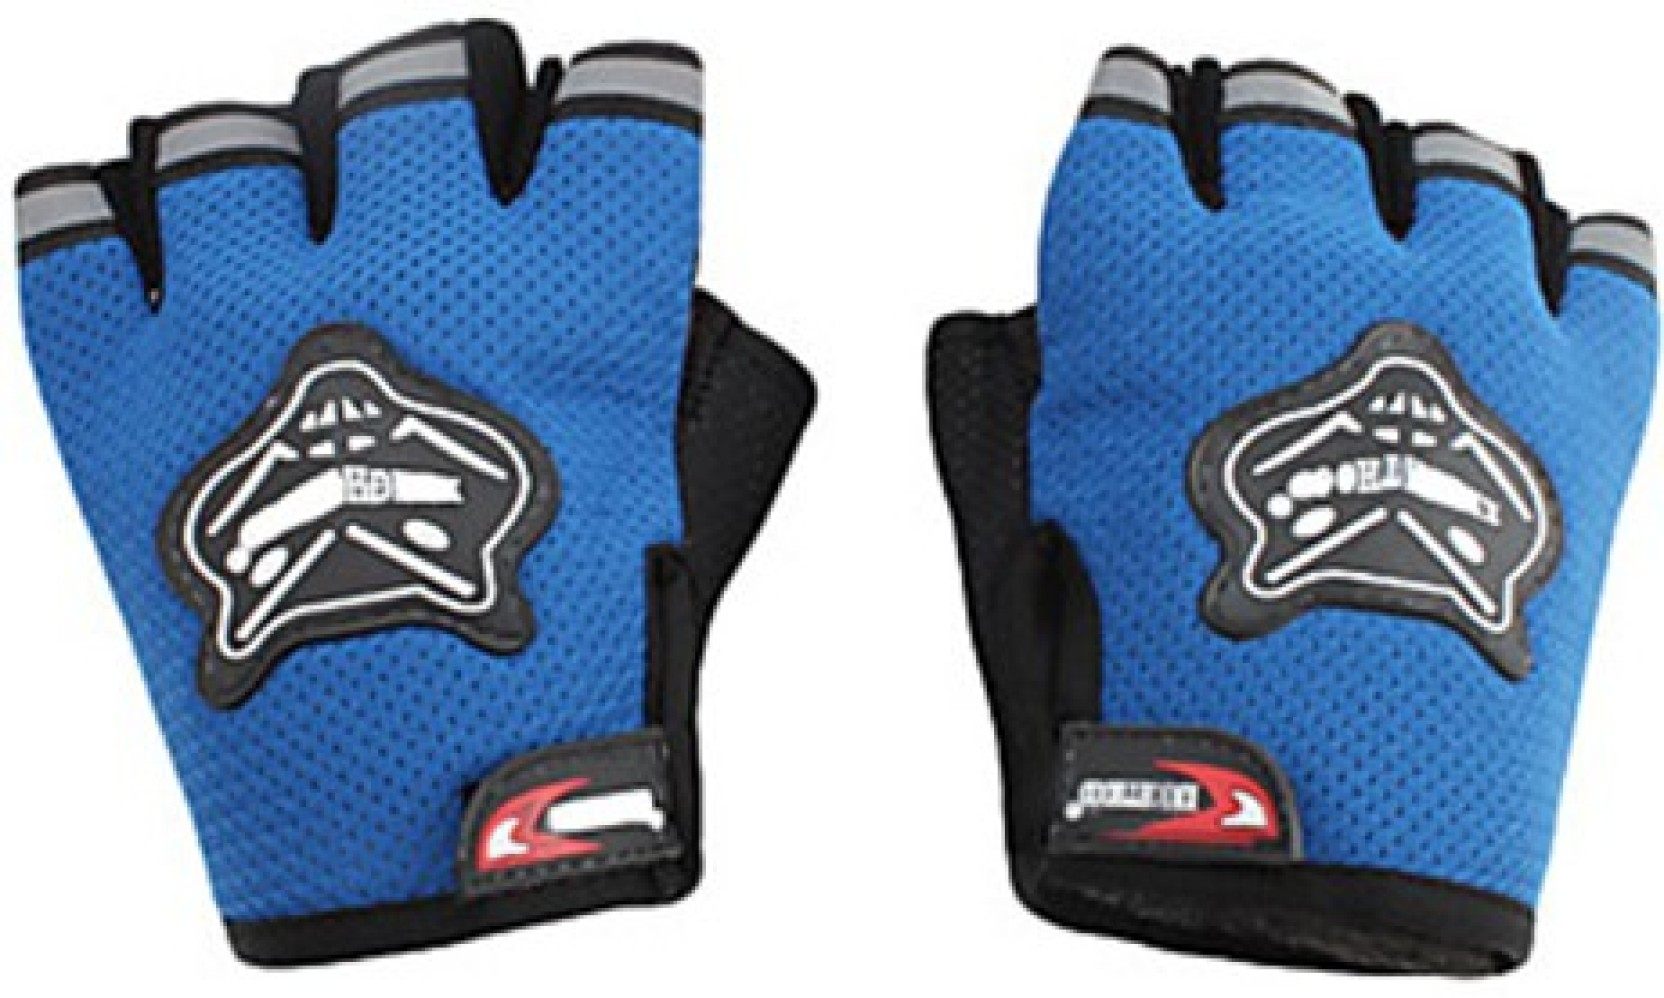 Knighthood 1 Pair Of Half Hand Grip For Bike Motorcycle Scooter Rider Sport Boxer R 383 On Offer